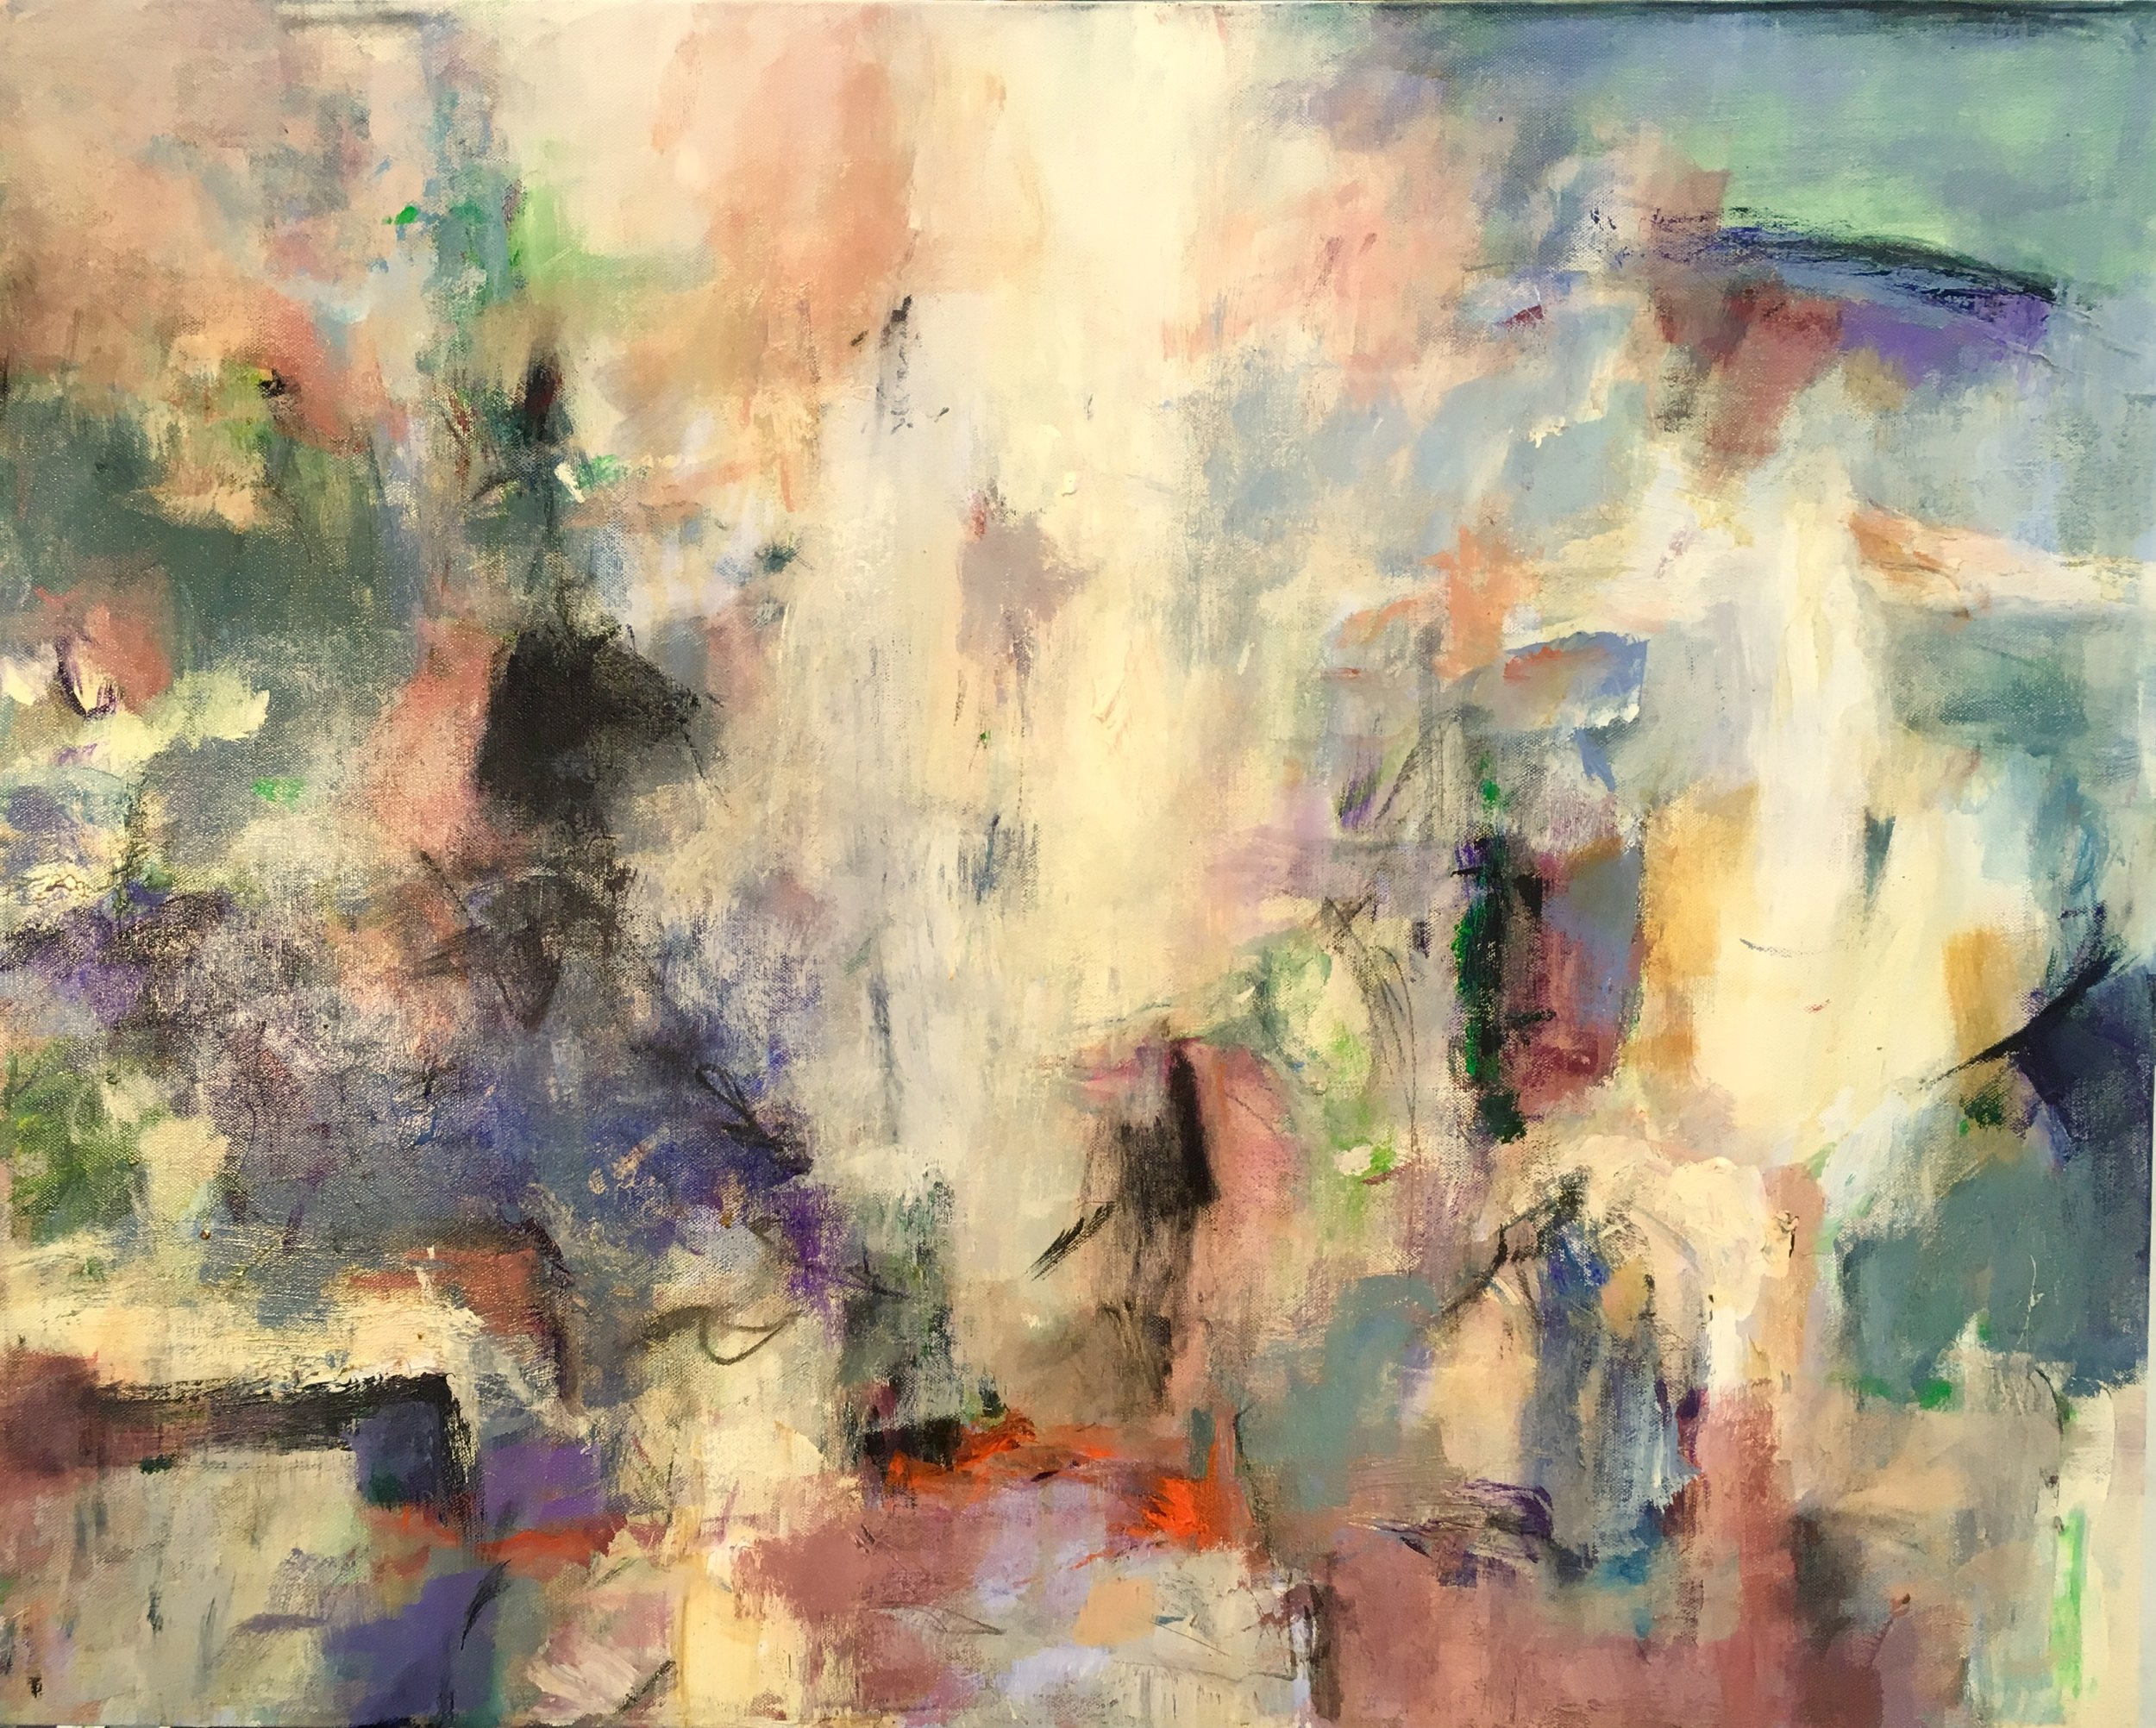 Jay Peterzell - Assumption - acrylic and charcoal on canvas - 24 x 30